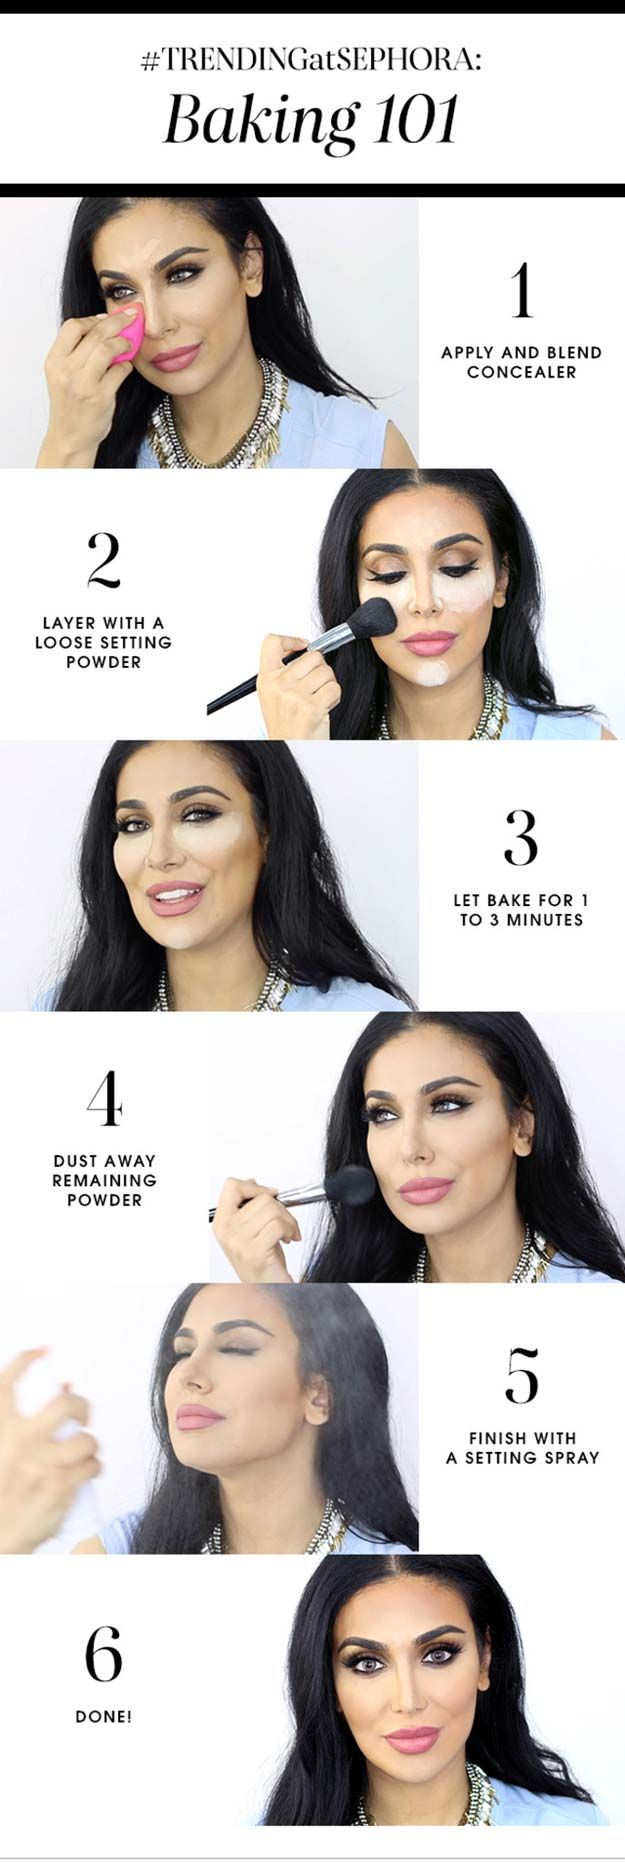 Best Makeup Baking Tutorials - Baking 101 - Easy Tips and Youtube Tutorial for Make Up Baking - Urban Decay and Kat Von D Tutorials for Different Faces and Shapes - Eyeshadow, Eyeliner and Foundation Products That Work Great - thegoddess.com/makeup-baking-tutorials